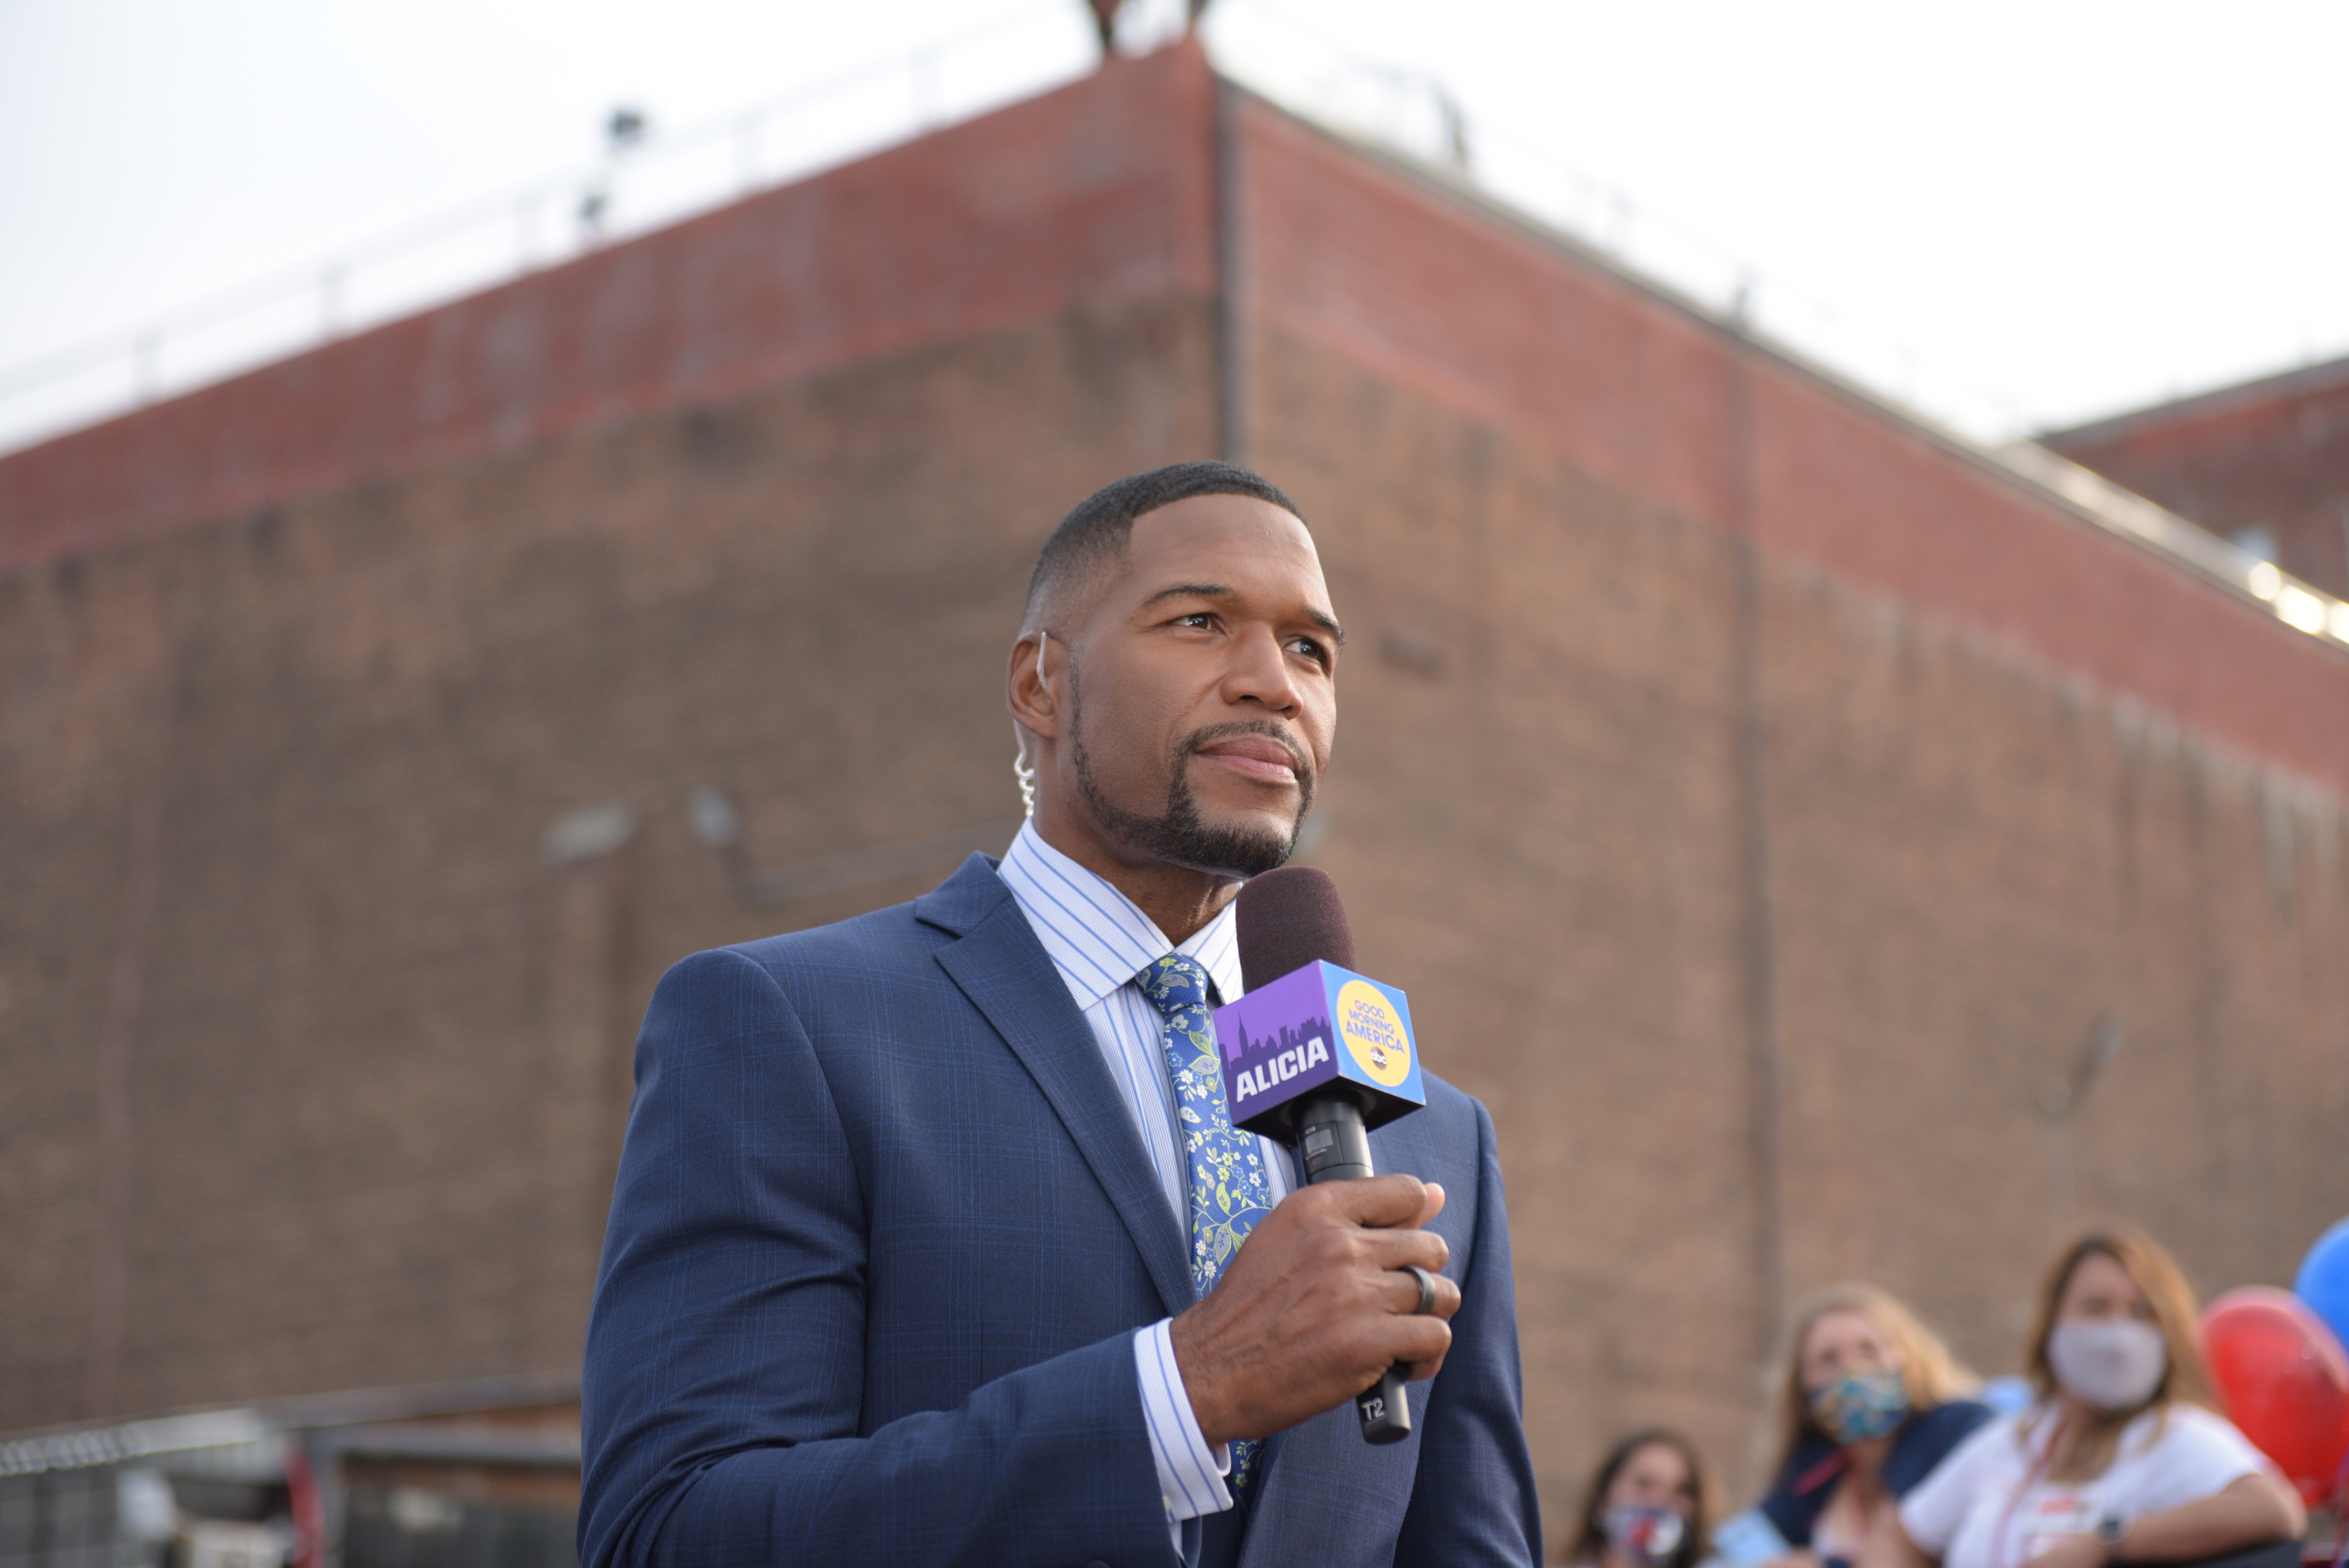 Michael Strahan hosts Good Morning America